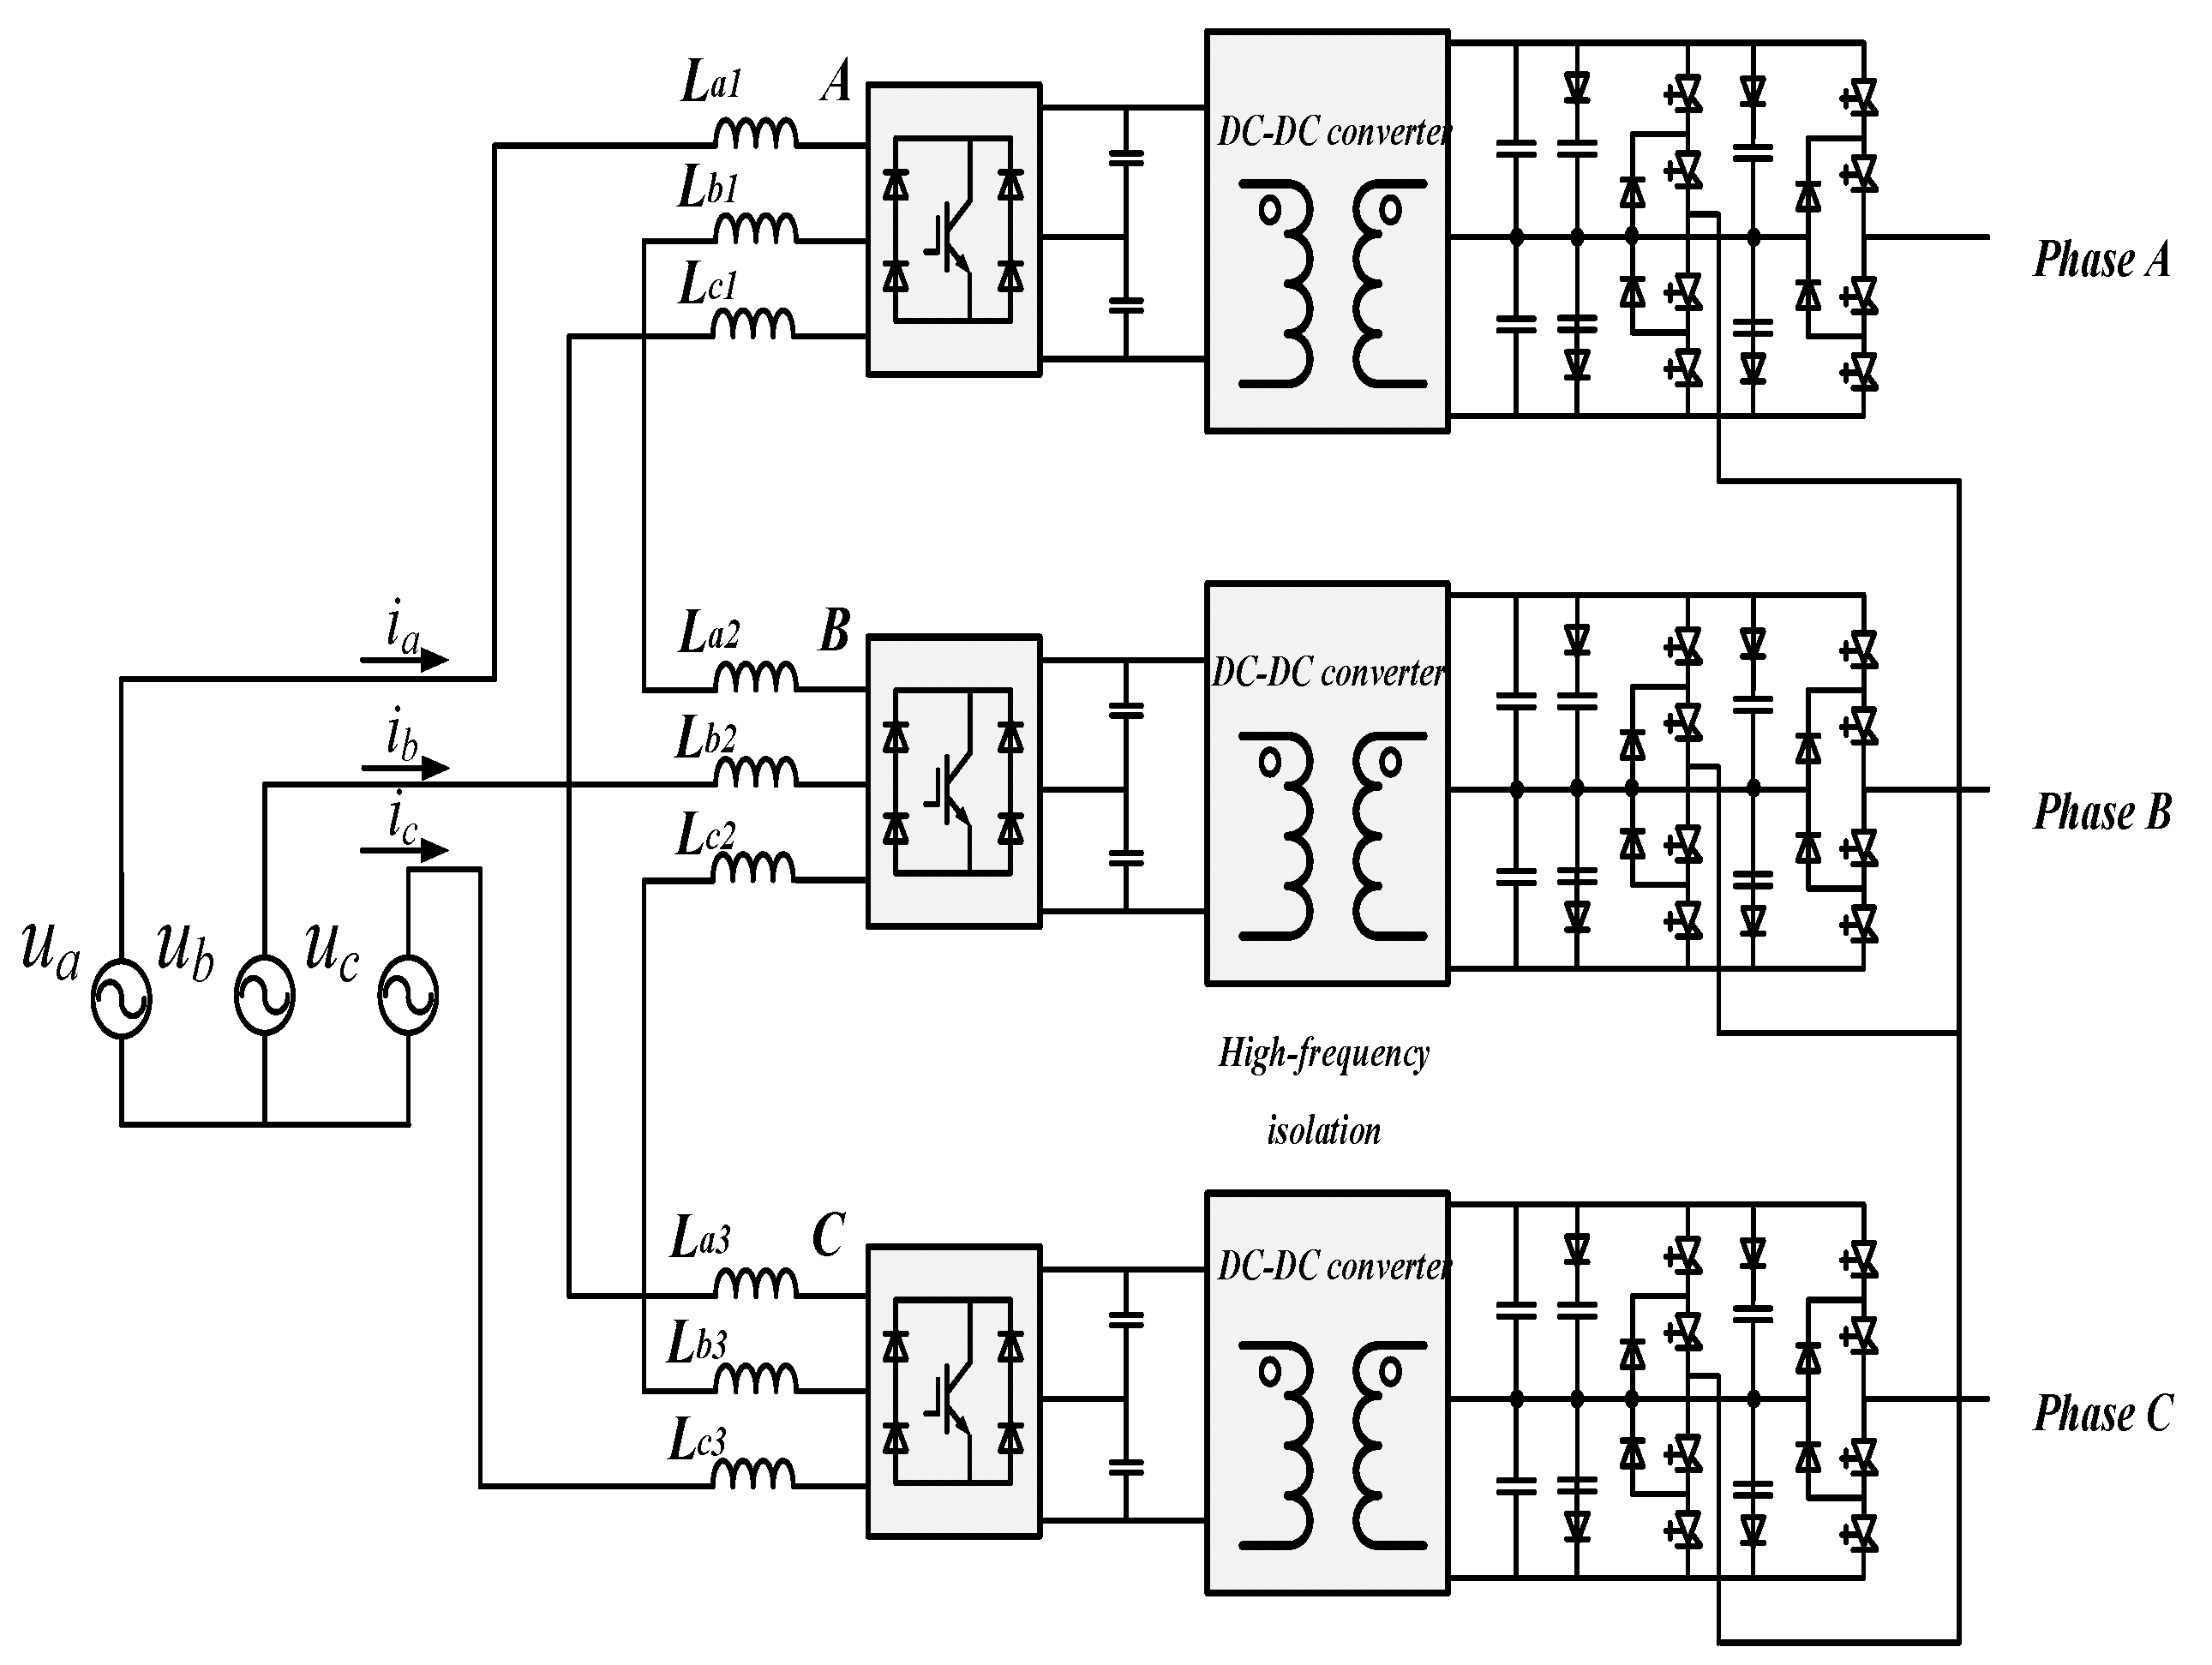 Amazing Static Phase Converter Wiring Diagram Ideas - Electrical and ...